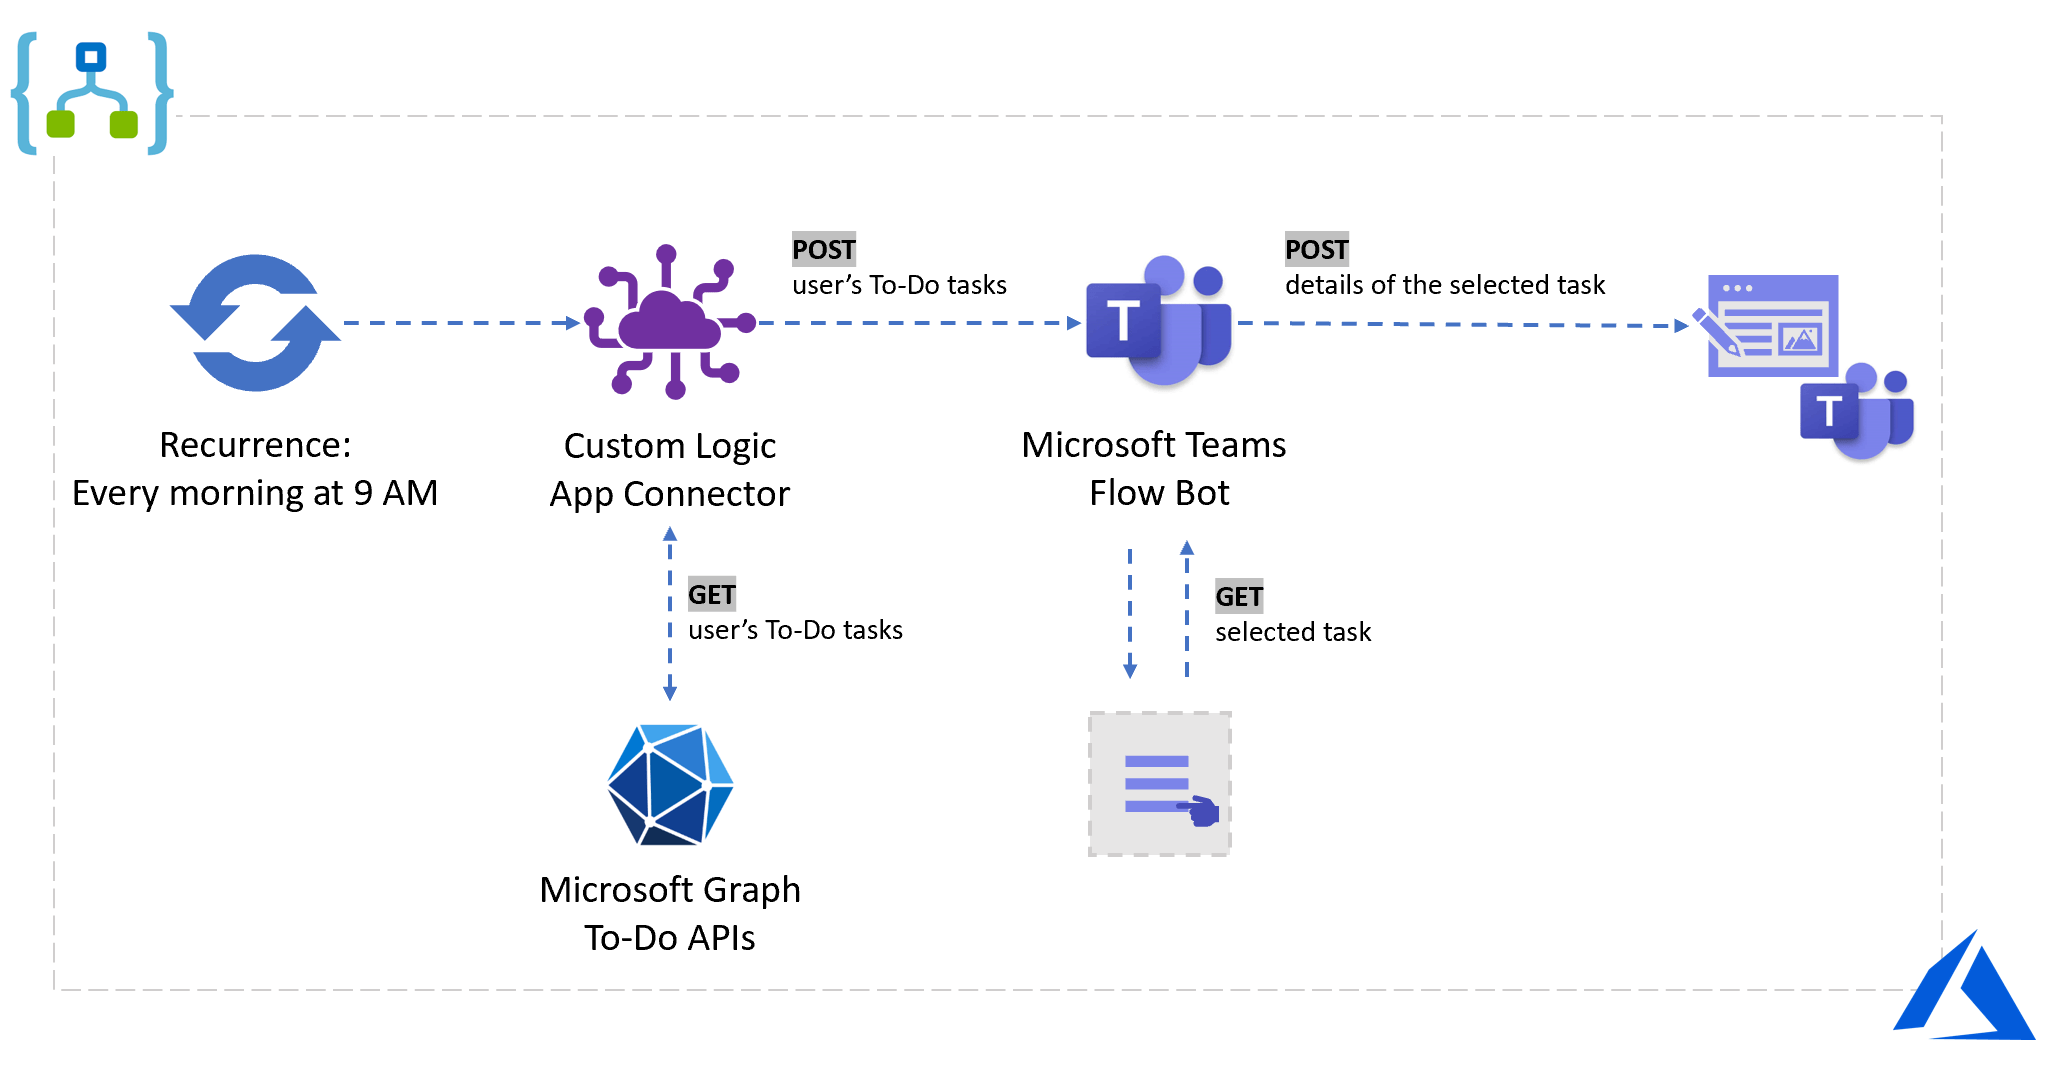 Quick bites for developers • Get your To-Do tasks ever morning on Microsoft Teams using Azure Logic Apps